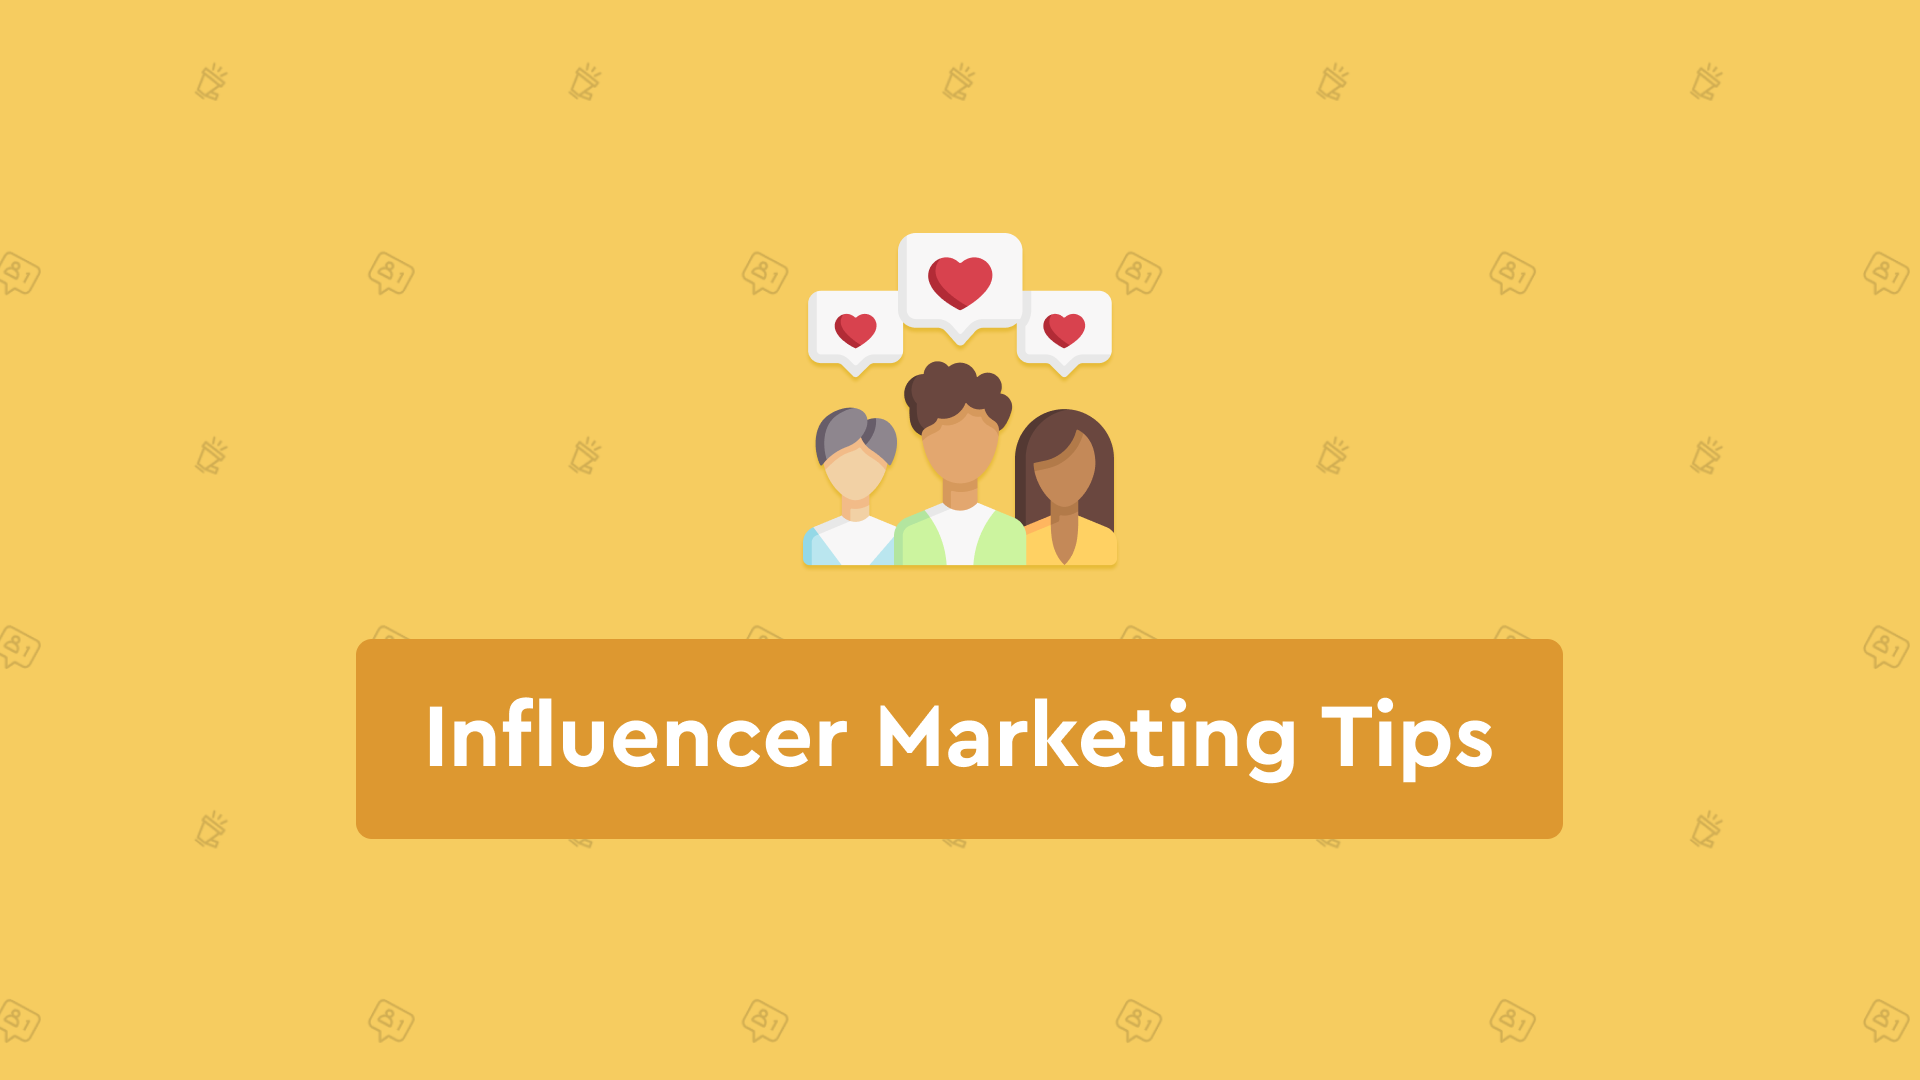 Influencer marketing uses influencers, such as celebrities, to push your product or service through a collaboration...